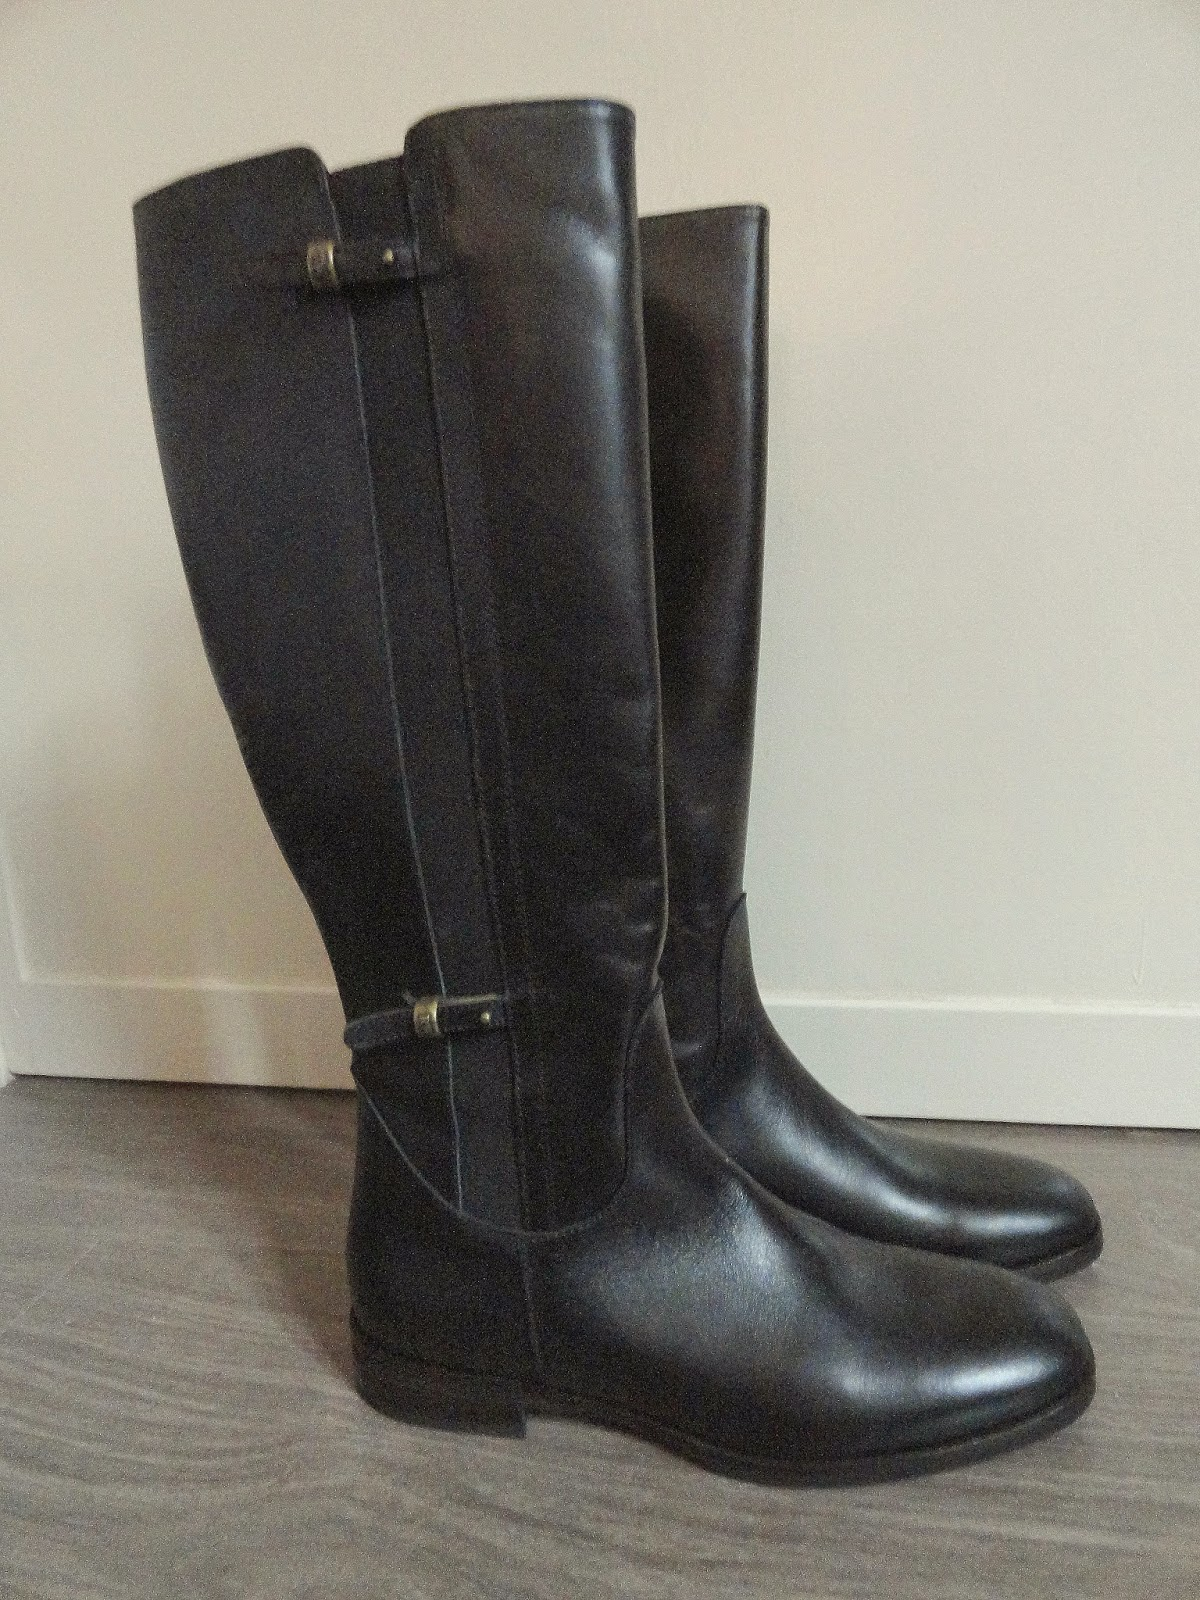 Clothes & Dreams: These boots are made for walking (shoplog): Black knee-high River Woods boots